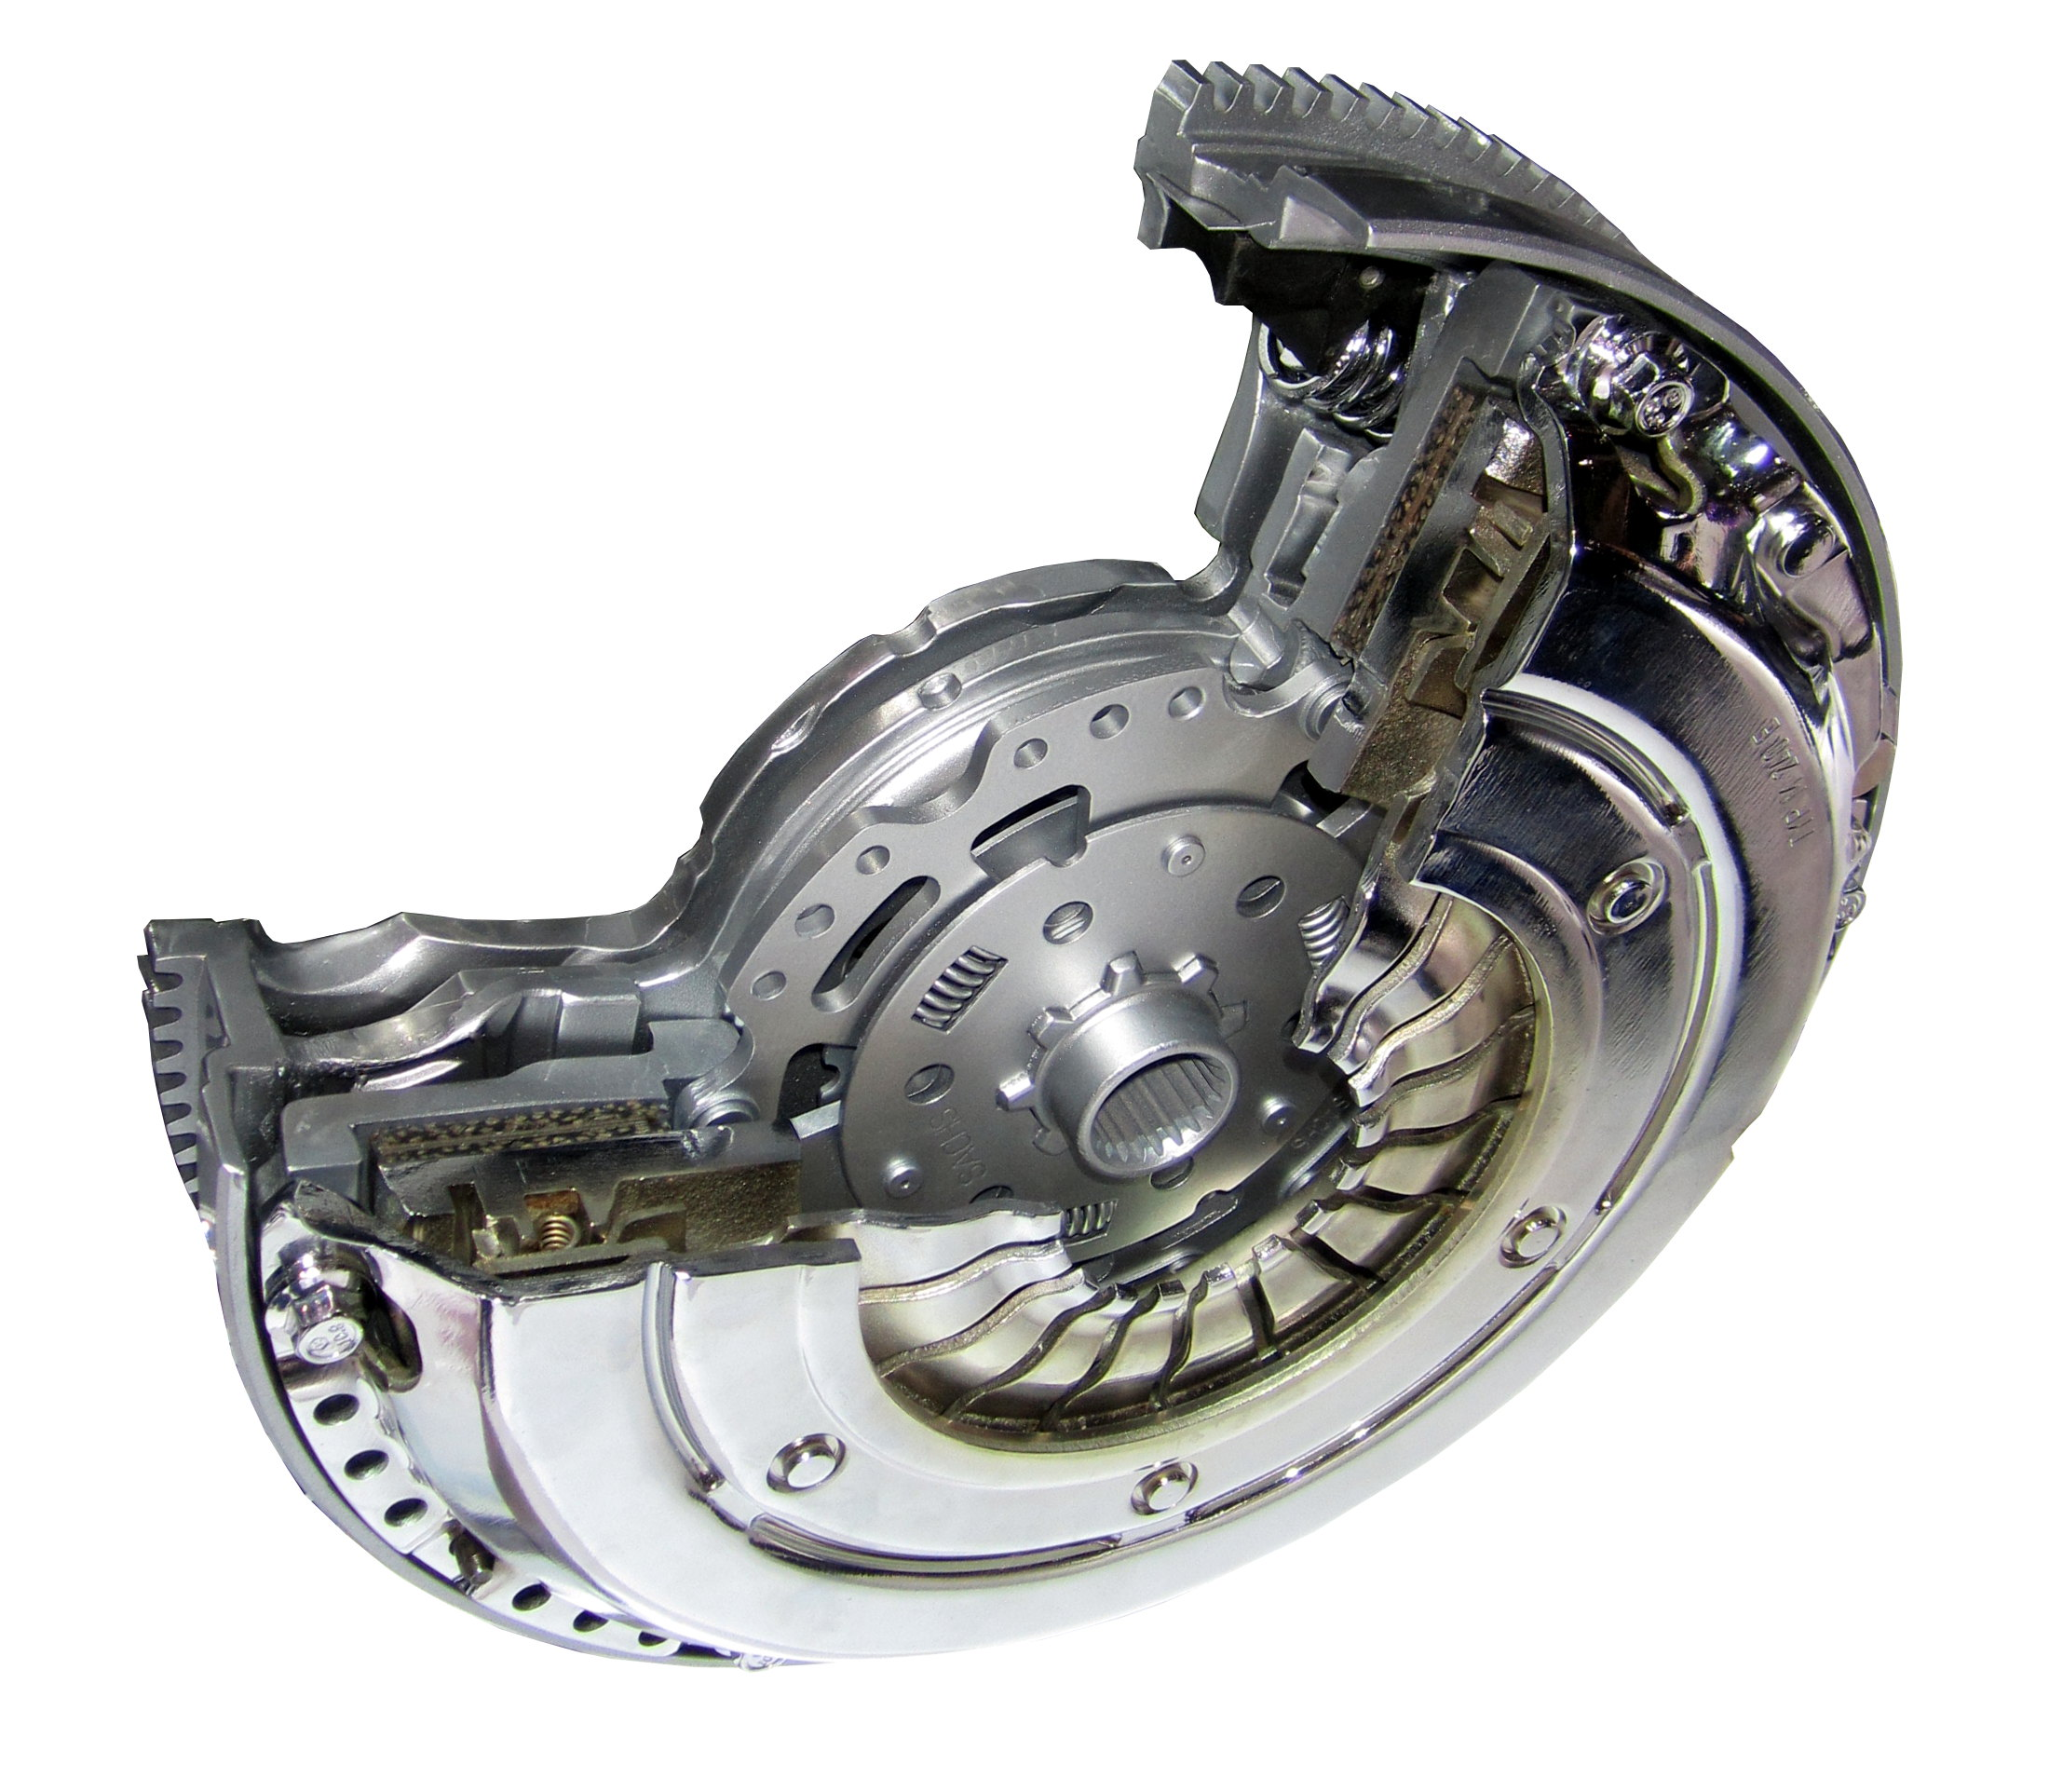 Dual-m flywheel - Wikipedia